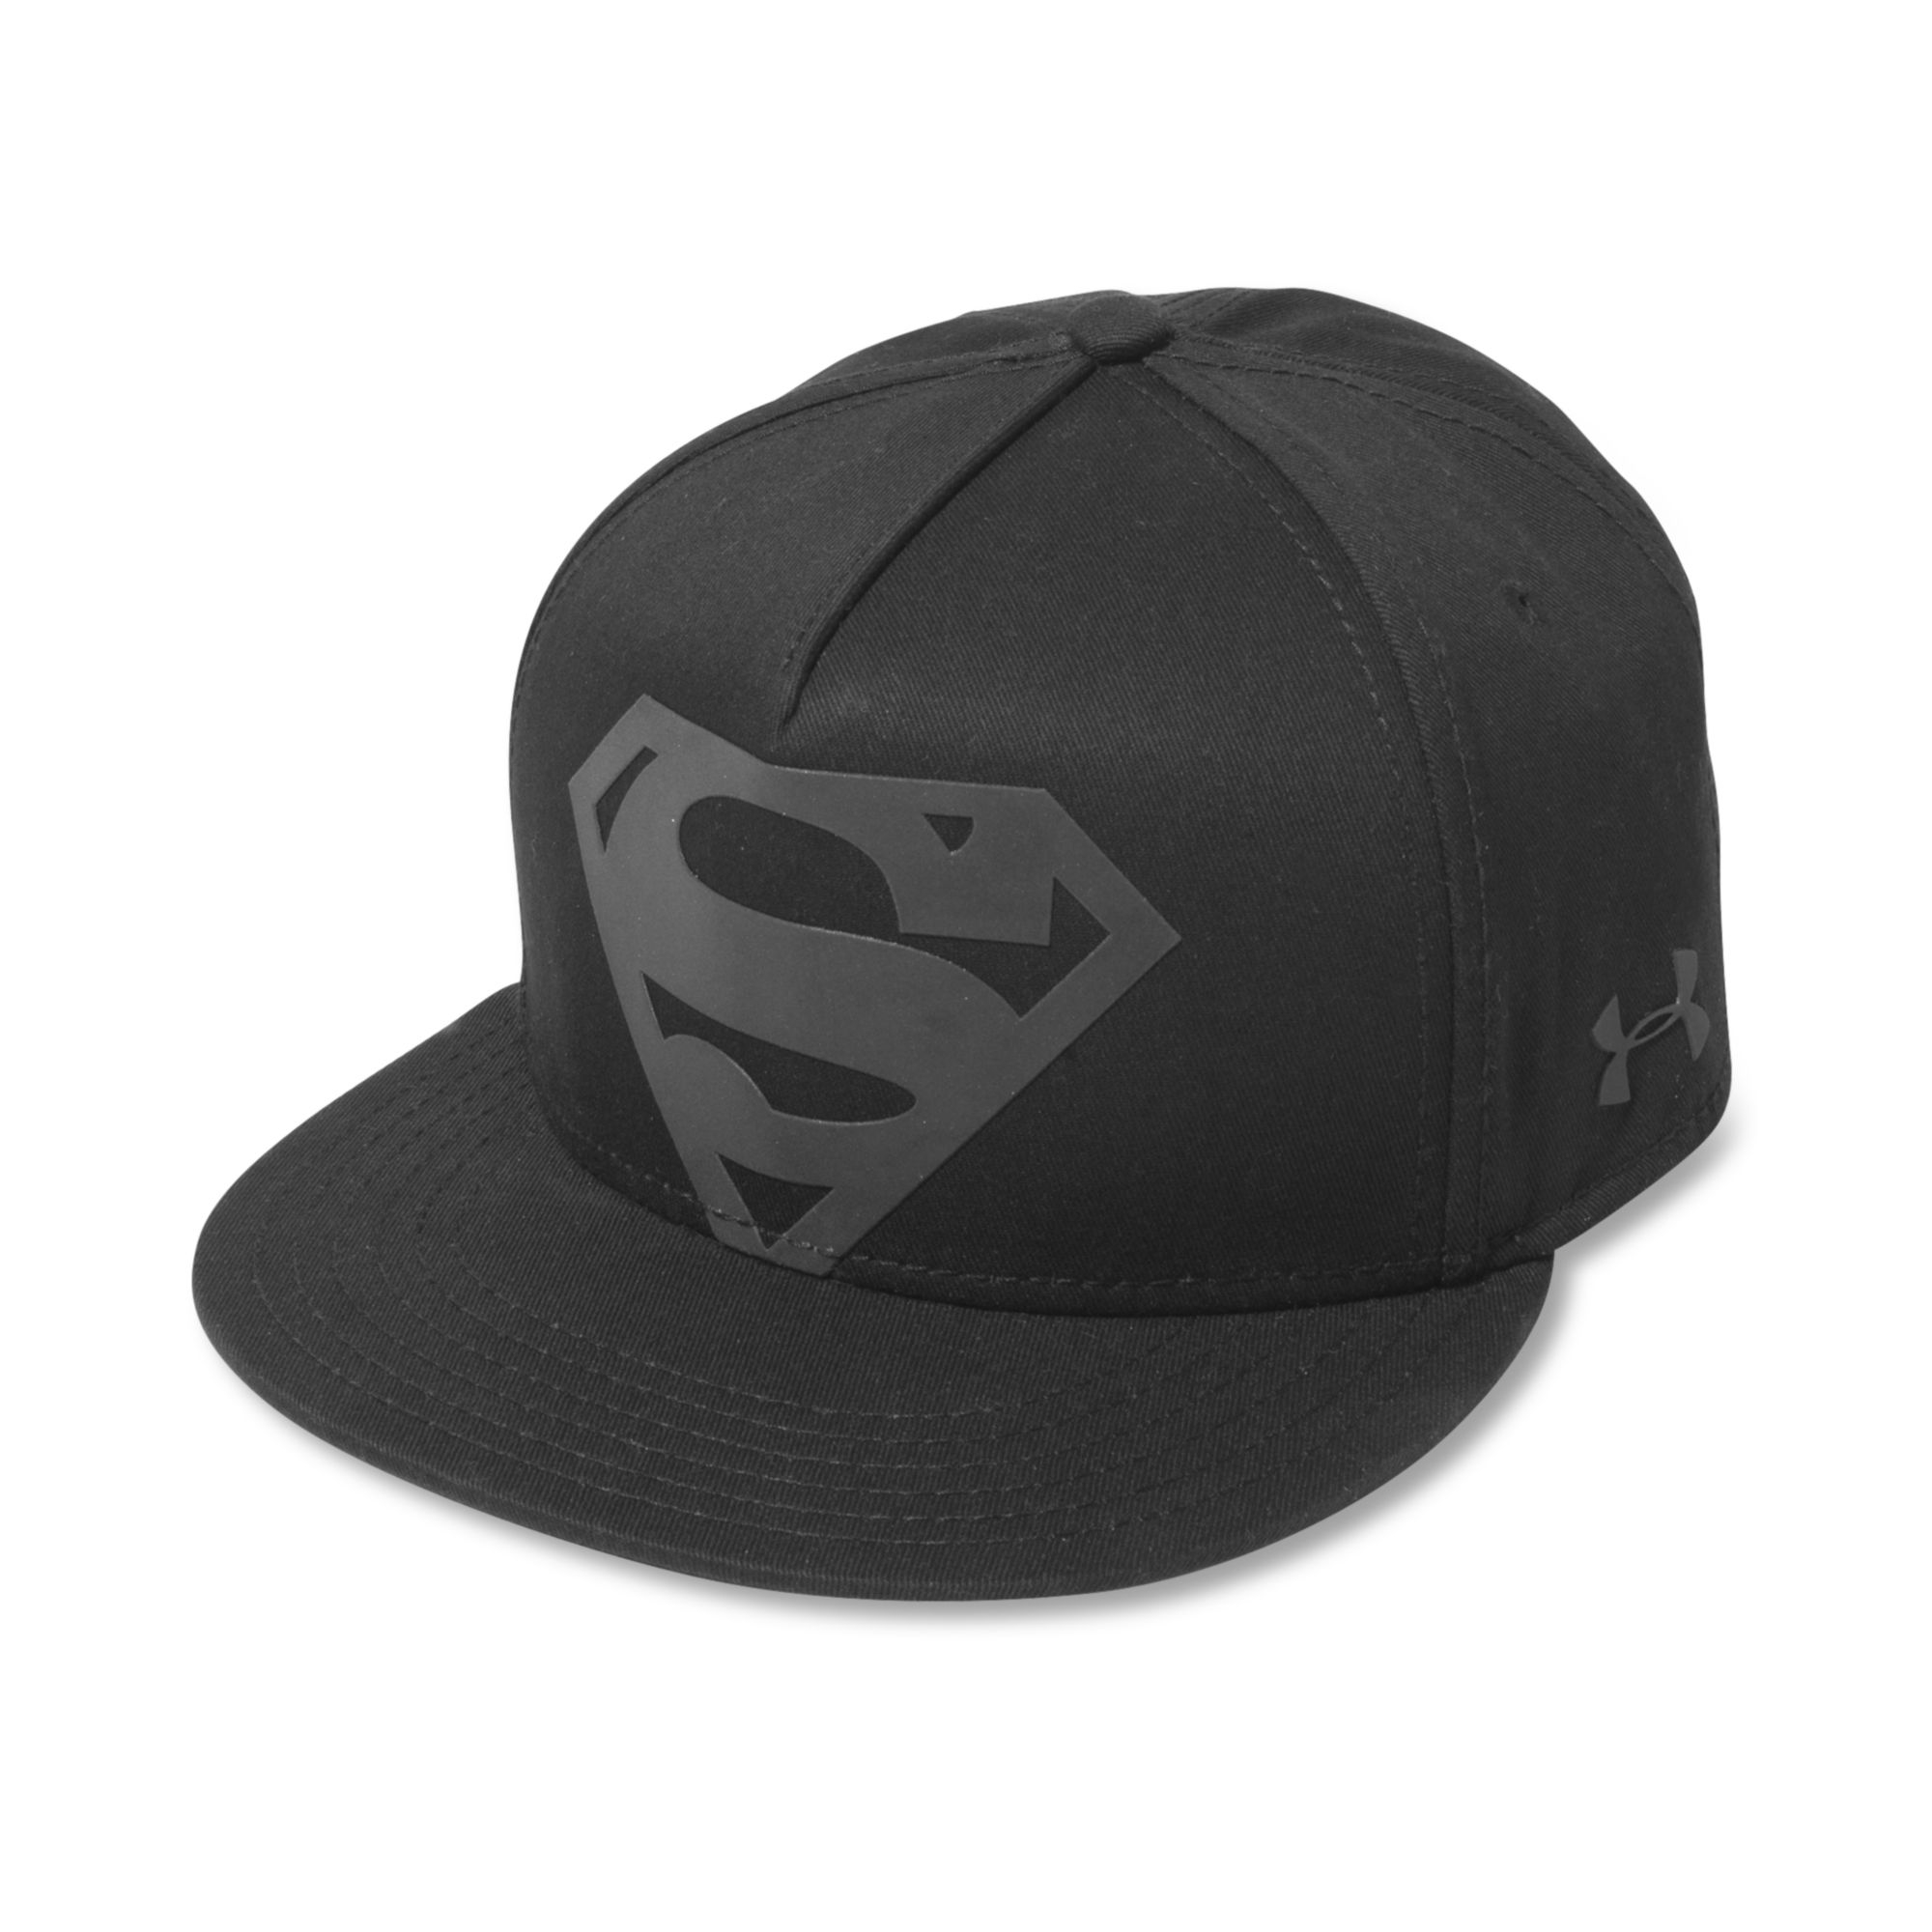 372713a280f89 Under Armour Superman Reflective Hat in Black for Men - Lyst